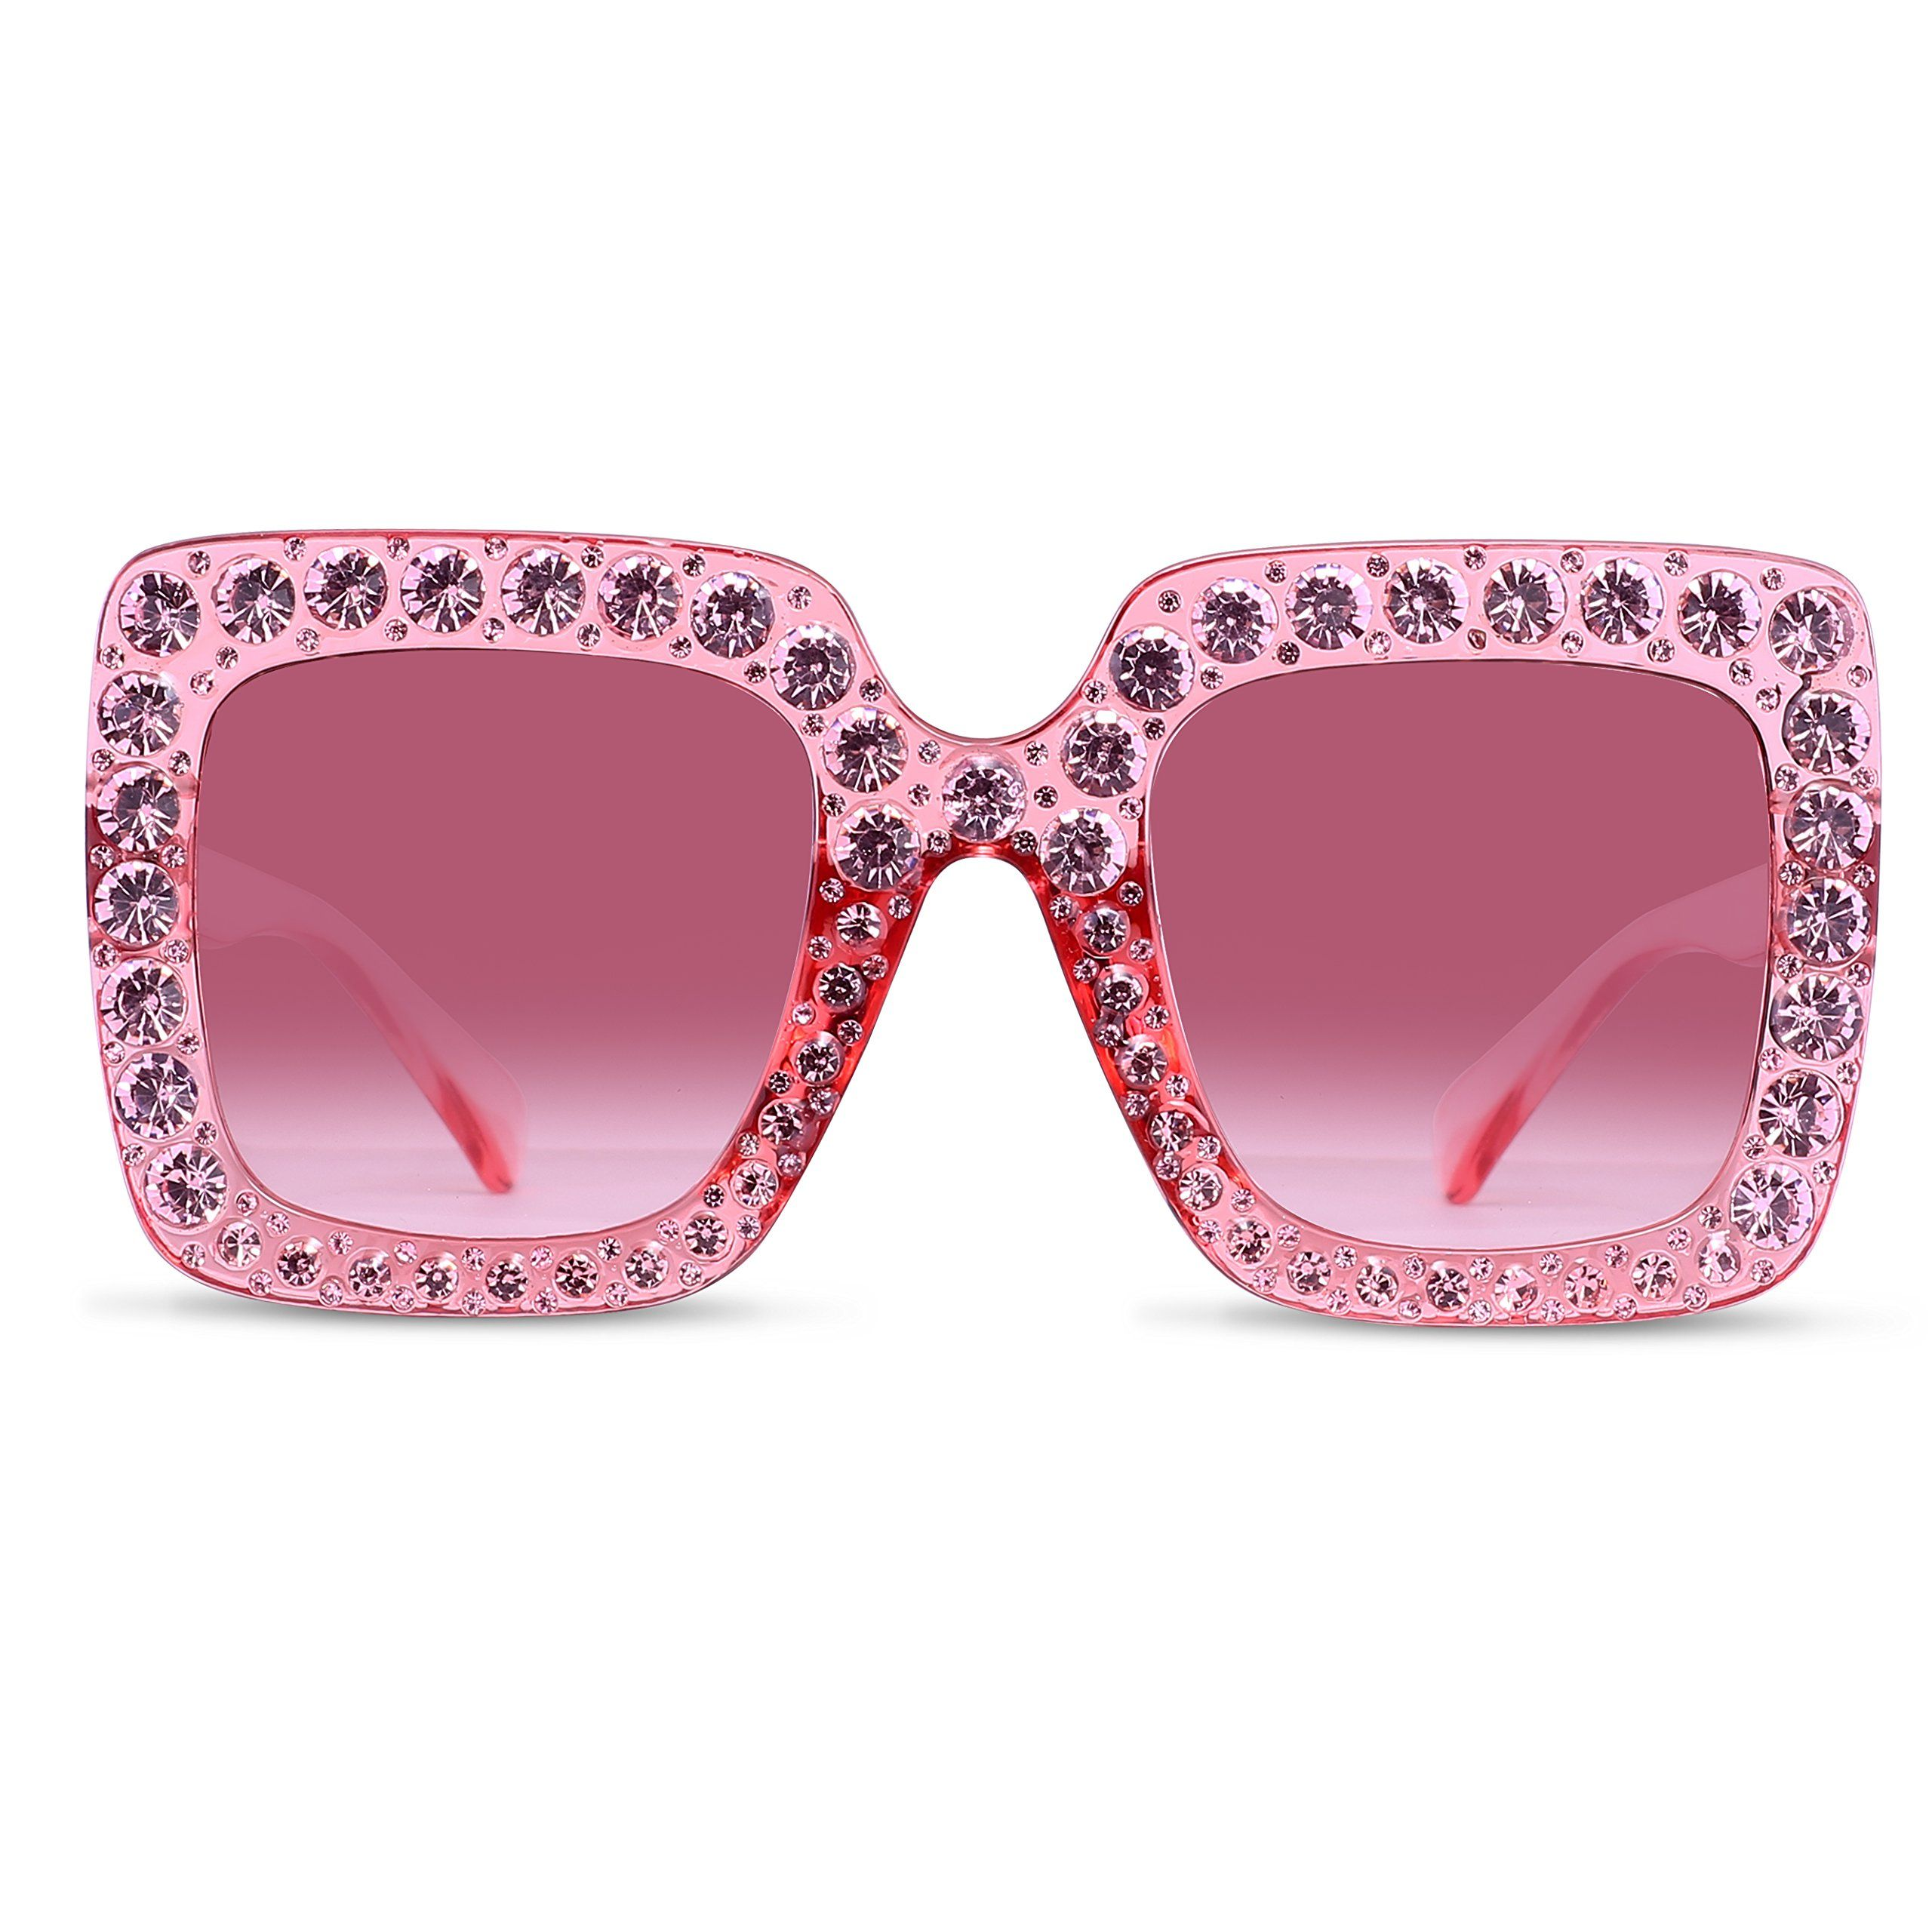 88afaf0c22 Oversized Crystal Sunglasses For Women – FEIRDIO Sparkling Square Thick  Sunglasses FD 2264(Pink gradient)   Want to know more